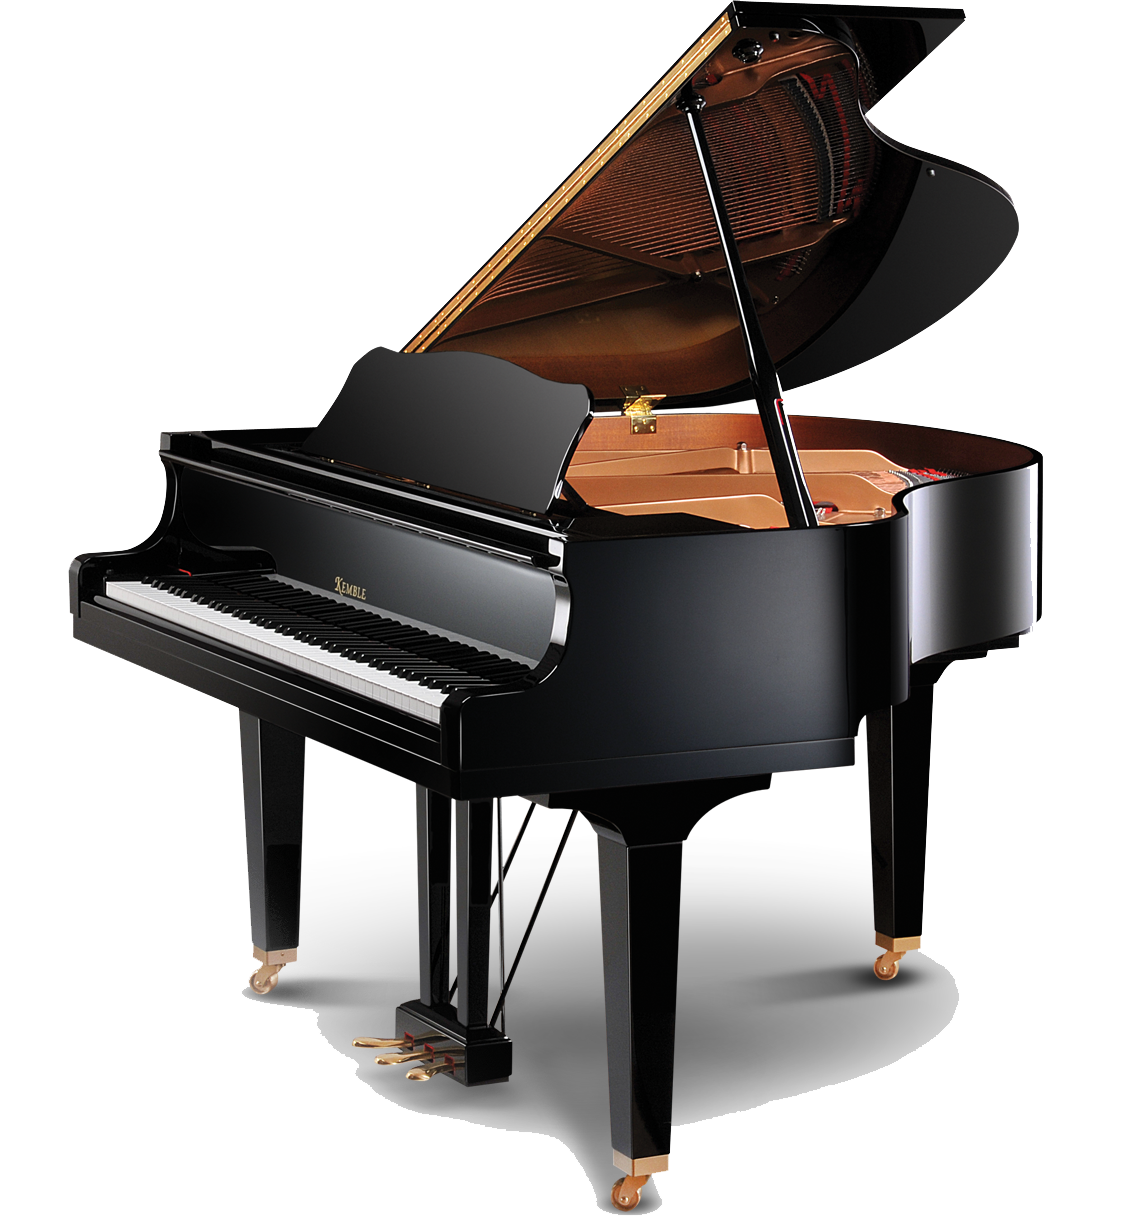 Grand piano png. Transparent images all clipart